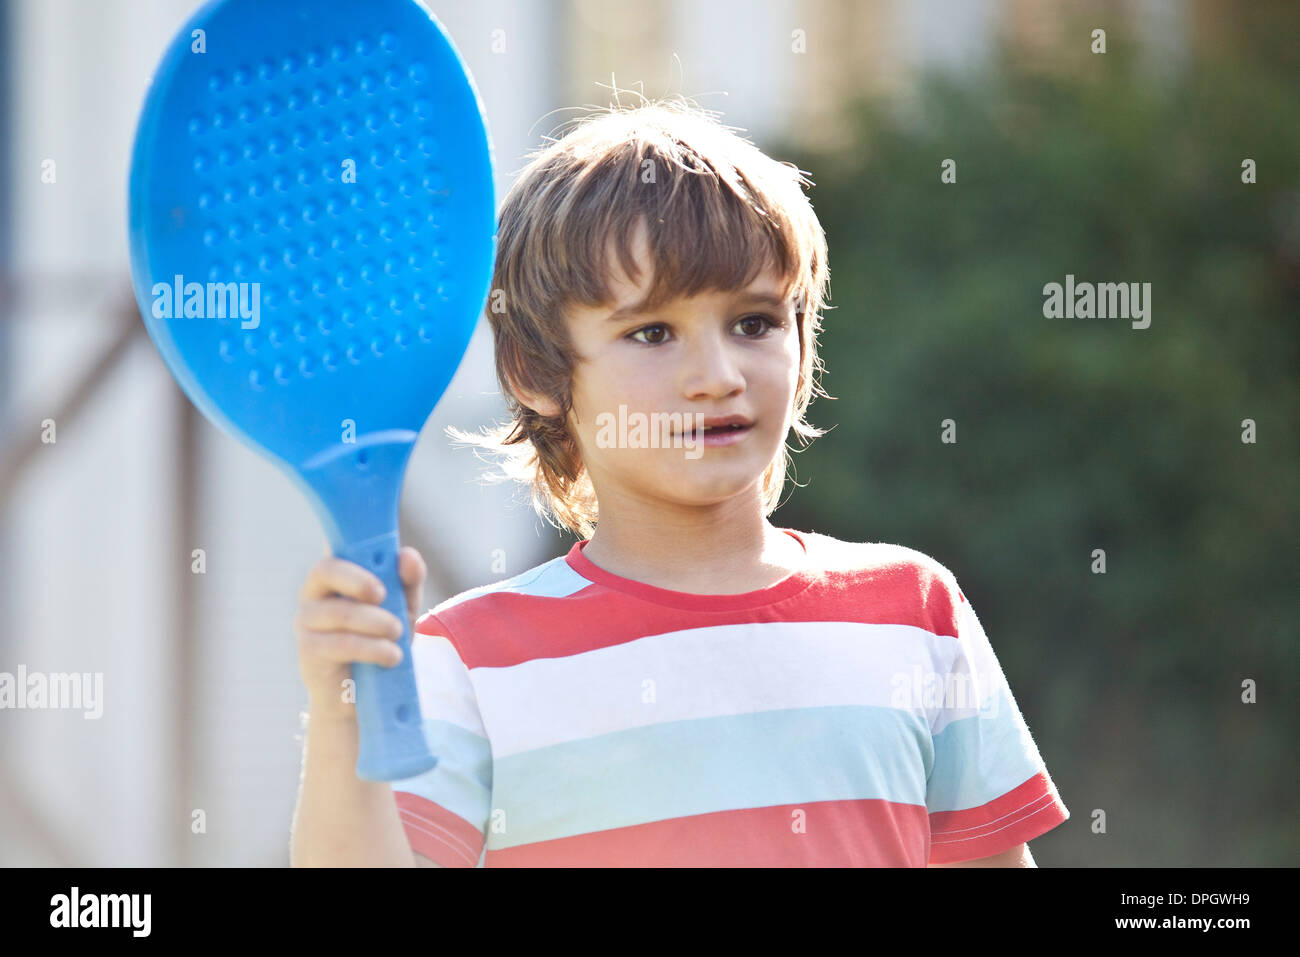 Boy holding racket - Stock Image